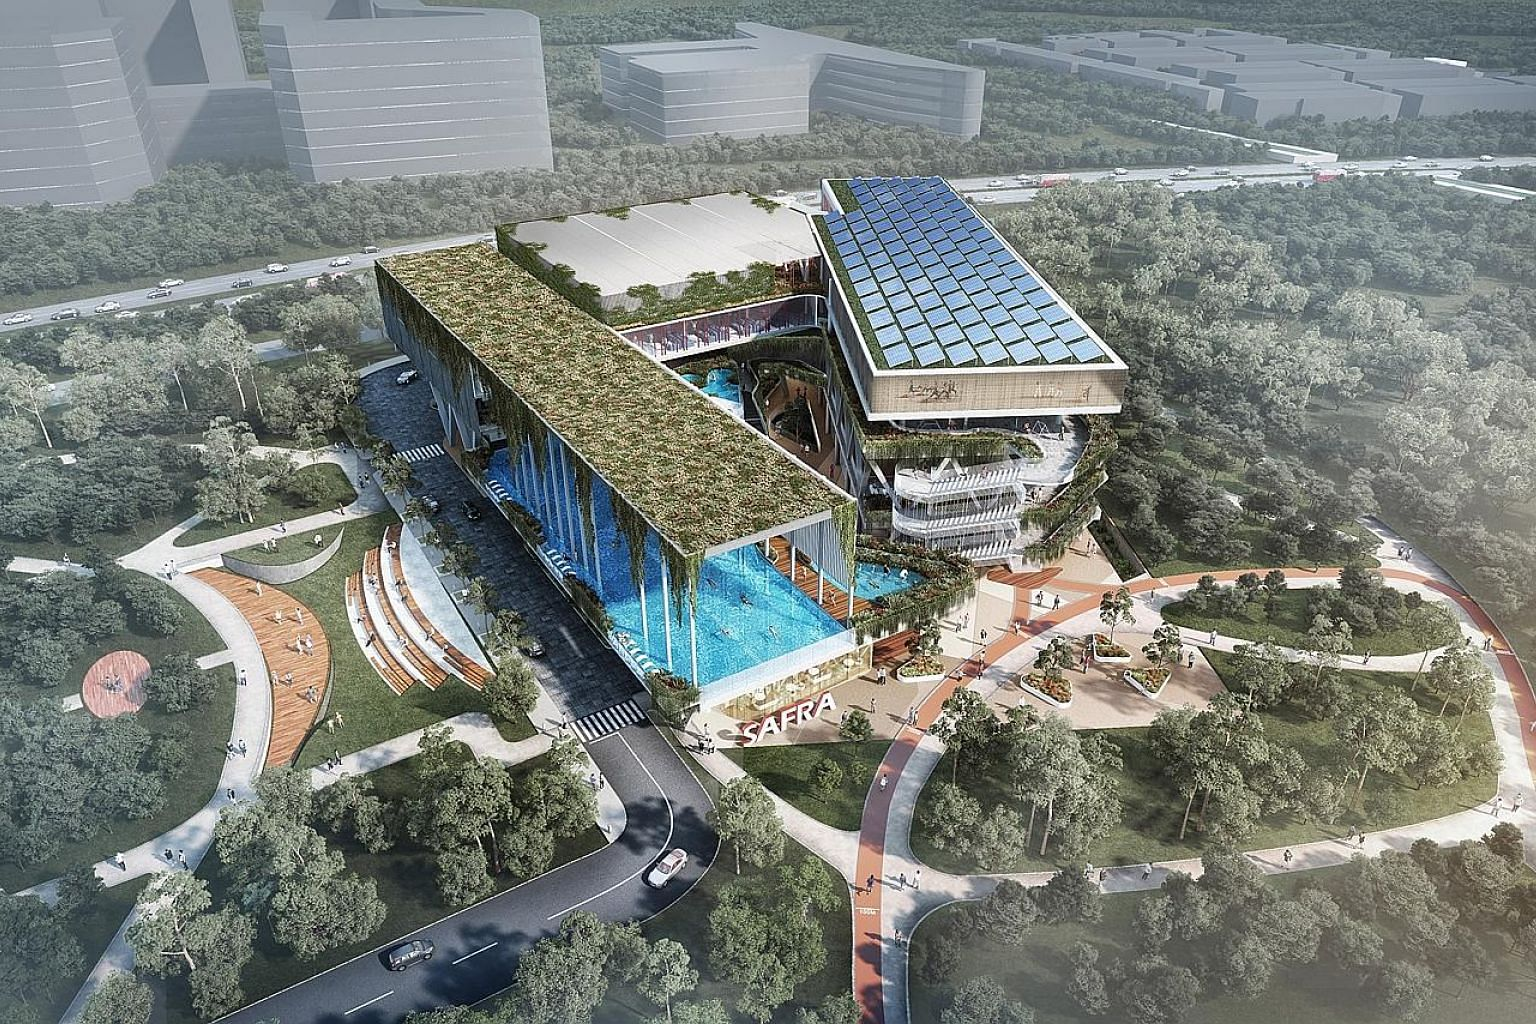 Artists' impressions of the new Safra clubhouse, which will be located within a five-minute walk from Choa Chu Kang MRT station. It will open in 2022 and the development cost is expected to be between $60 million and $70 million. It will be the seven